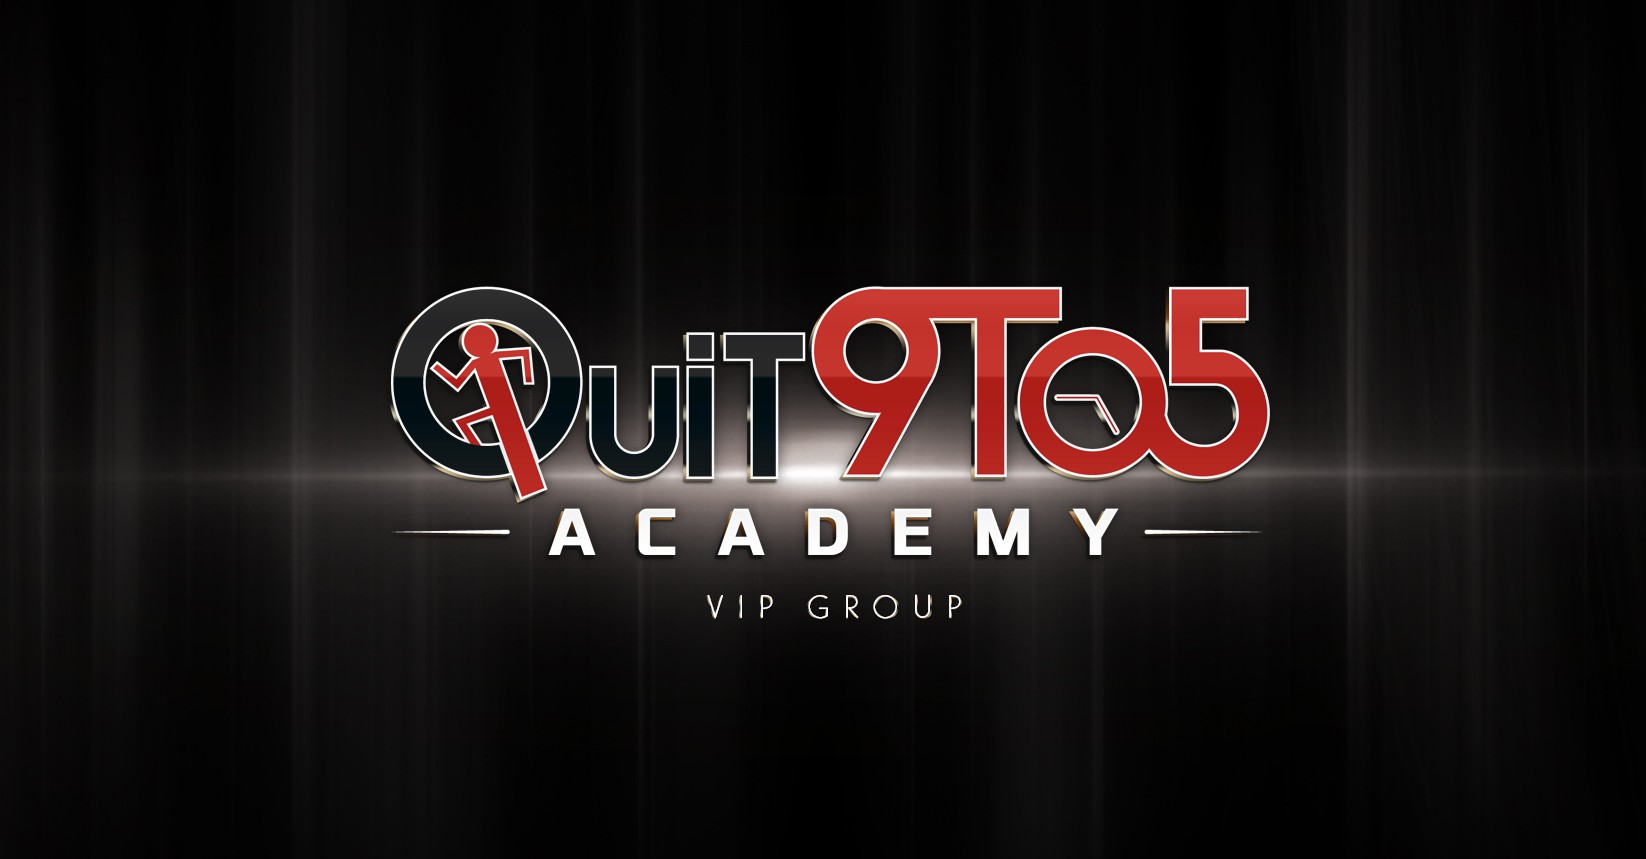 Bonus To Best Design Wins! Quit 9 To 5 Academy Group Cover Redesign